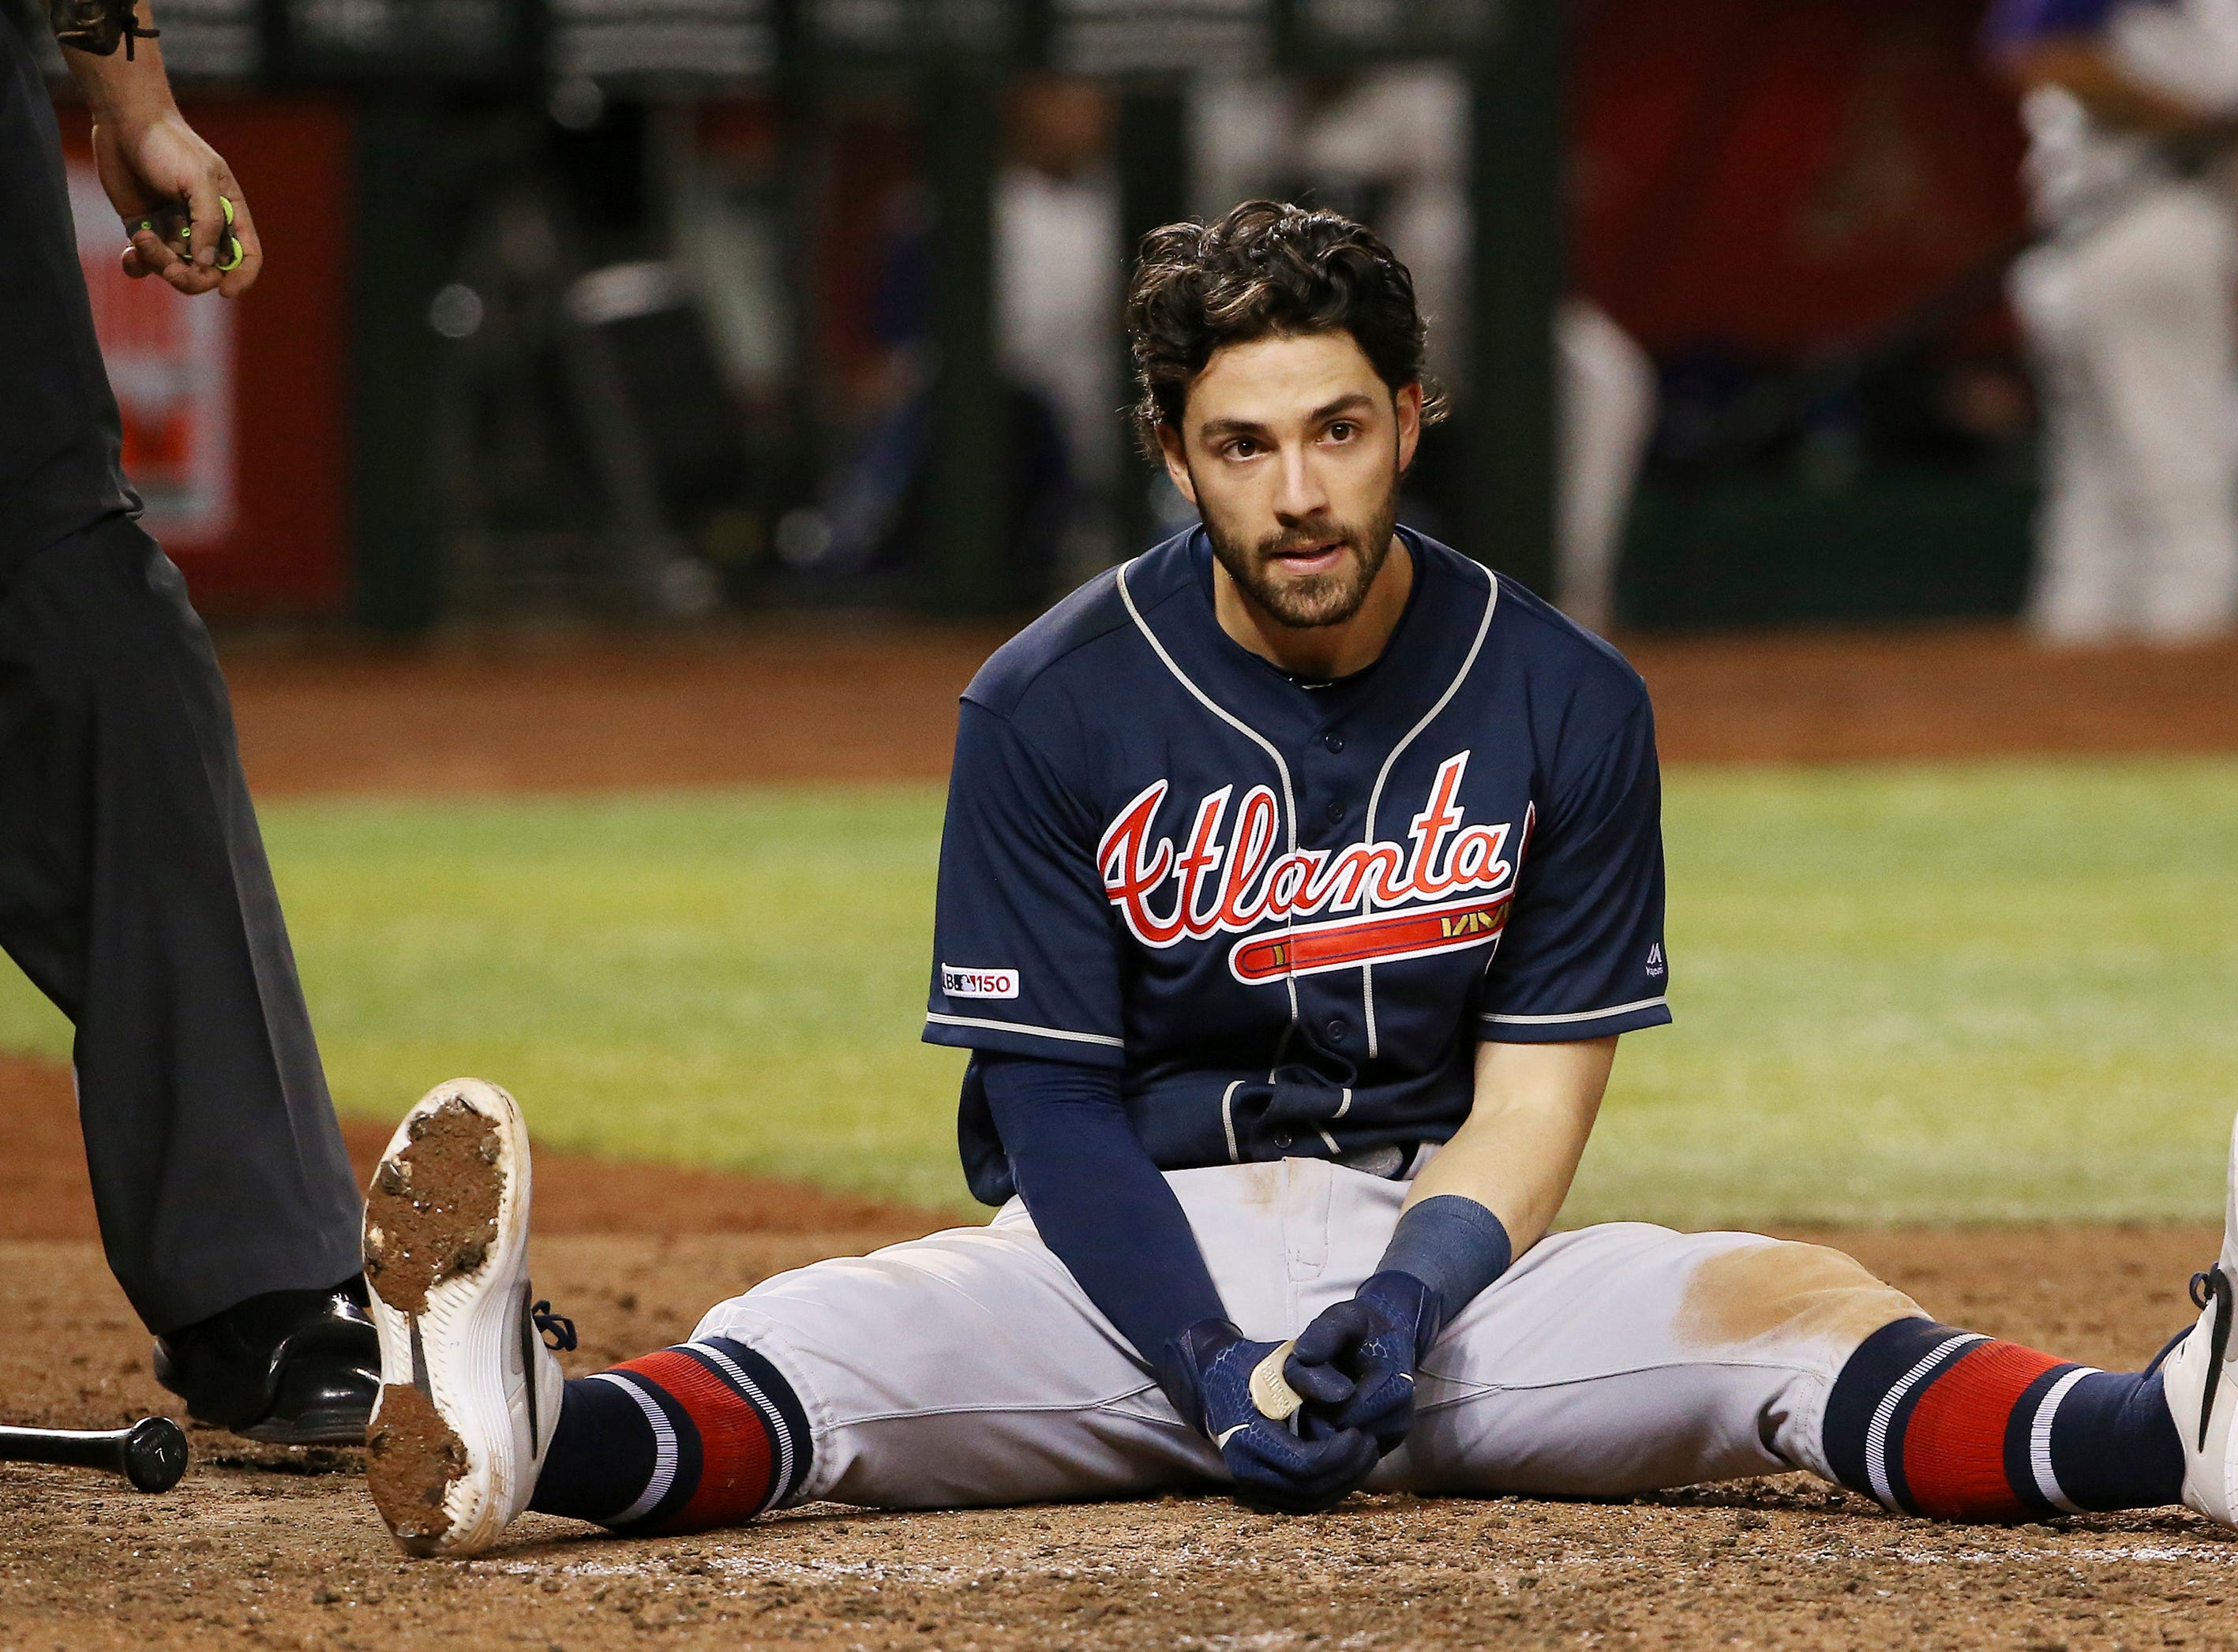 Atlanta Braves' Dansby Swanson sits on the ground after fouling off a pitch that nearly hit him during the seventh inning of the team's baseball game against the Arizona Diamondbacks on Thursday, May 9, 2019, in Phoenix. (AP Photo/Ross D. Franklin)